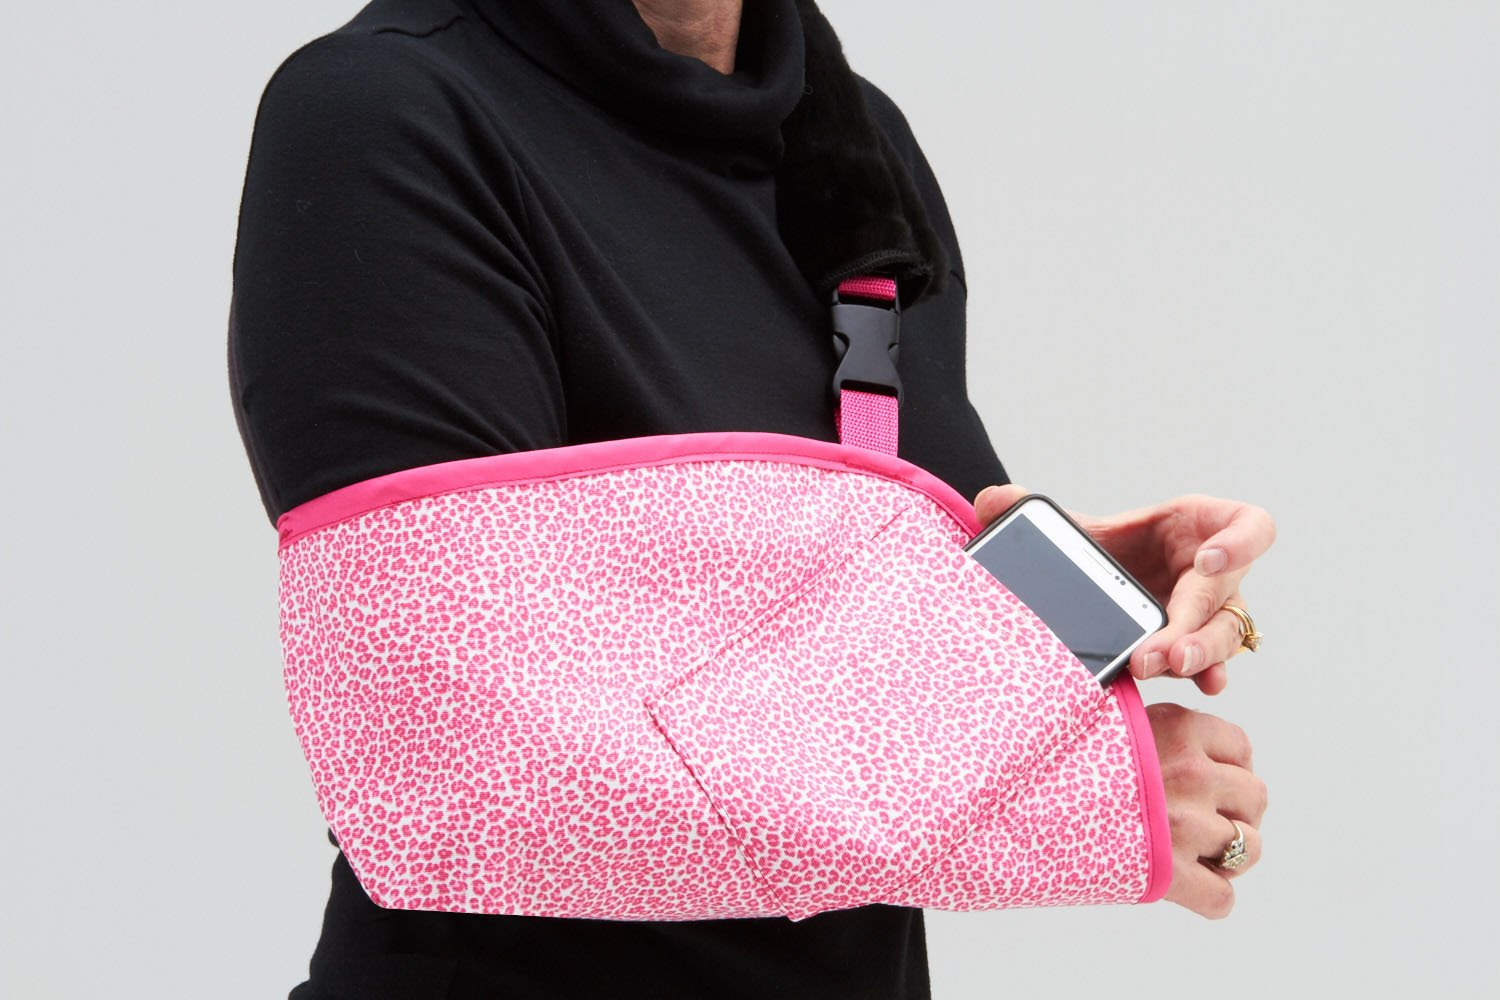 CastCoverz! Slingz! Designer Arm Sling in Seeing Spots Pink - Large Left Arm with Berry Pink Trim and Cell Phone Pocket